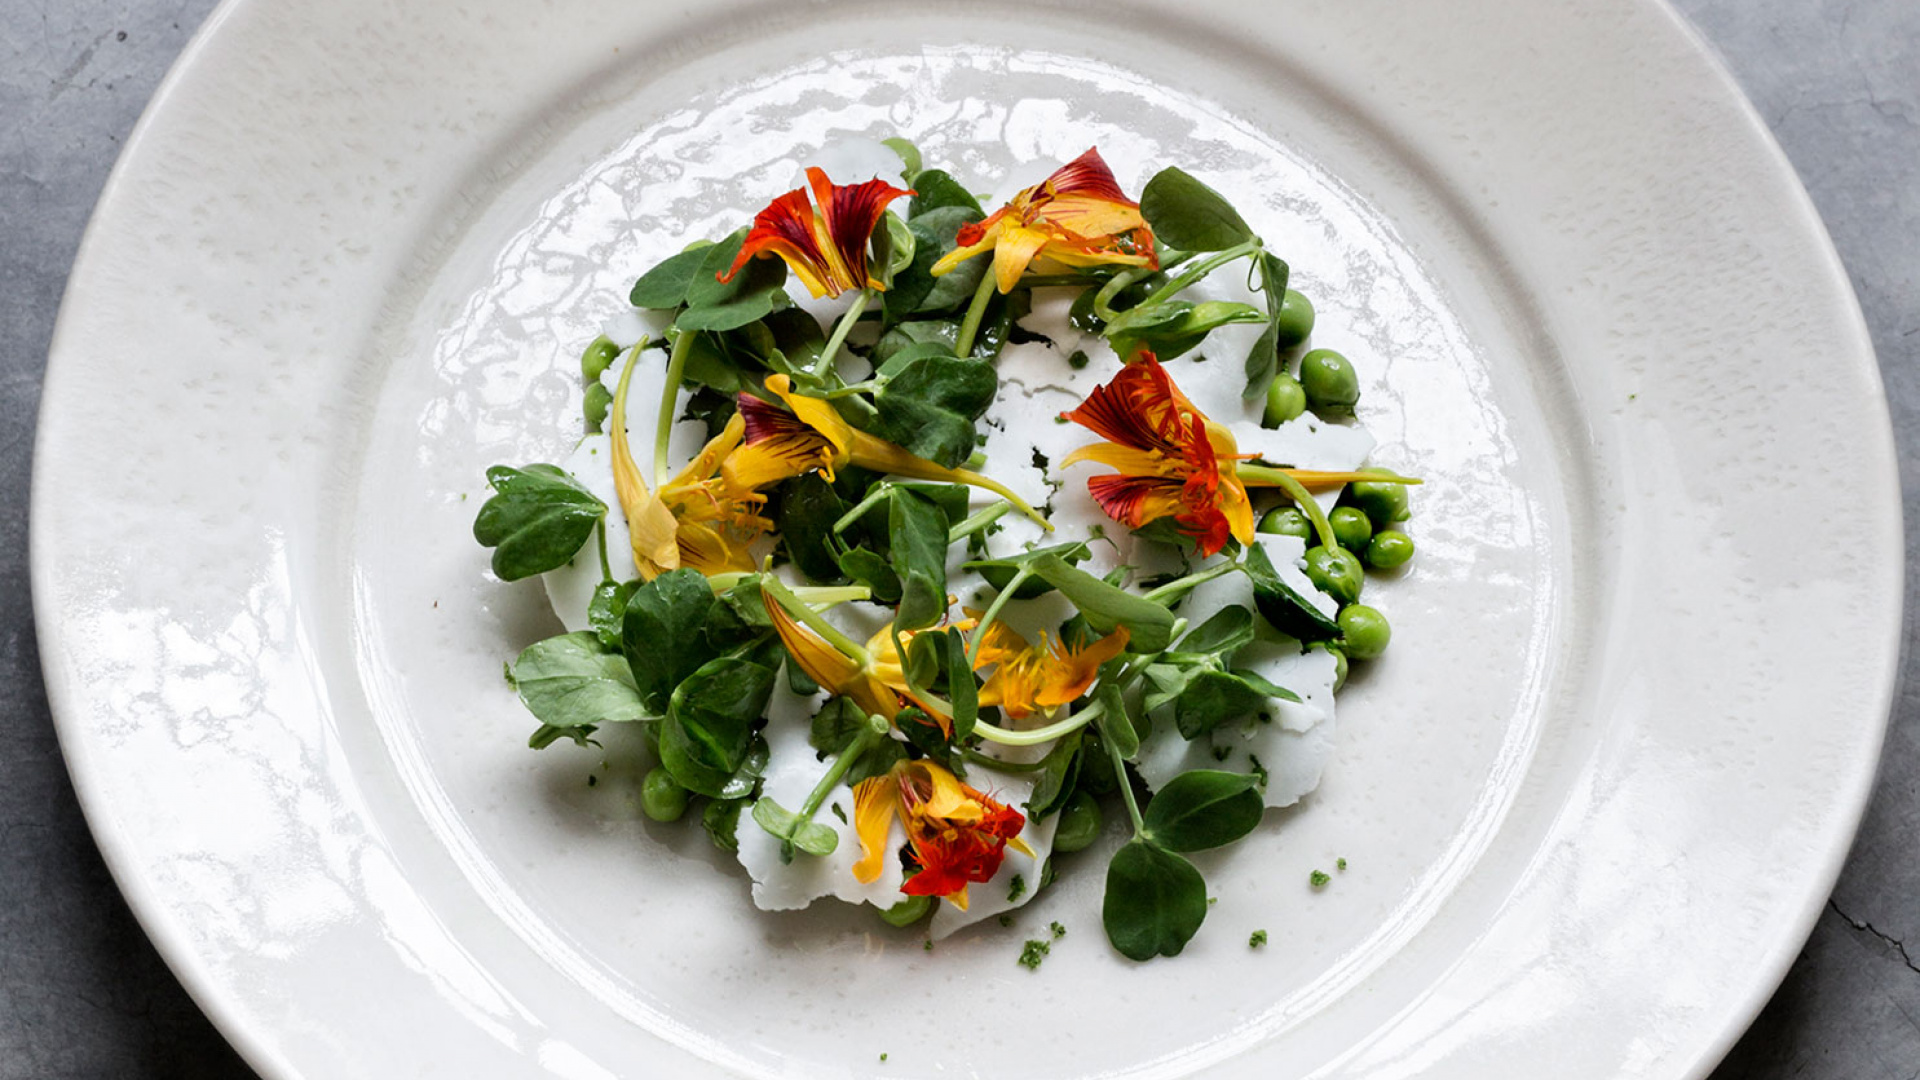 James Lowe's recipe for pea and Ticklemore salad at Harvey Nichols